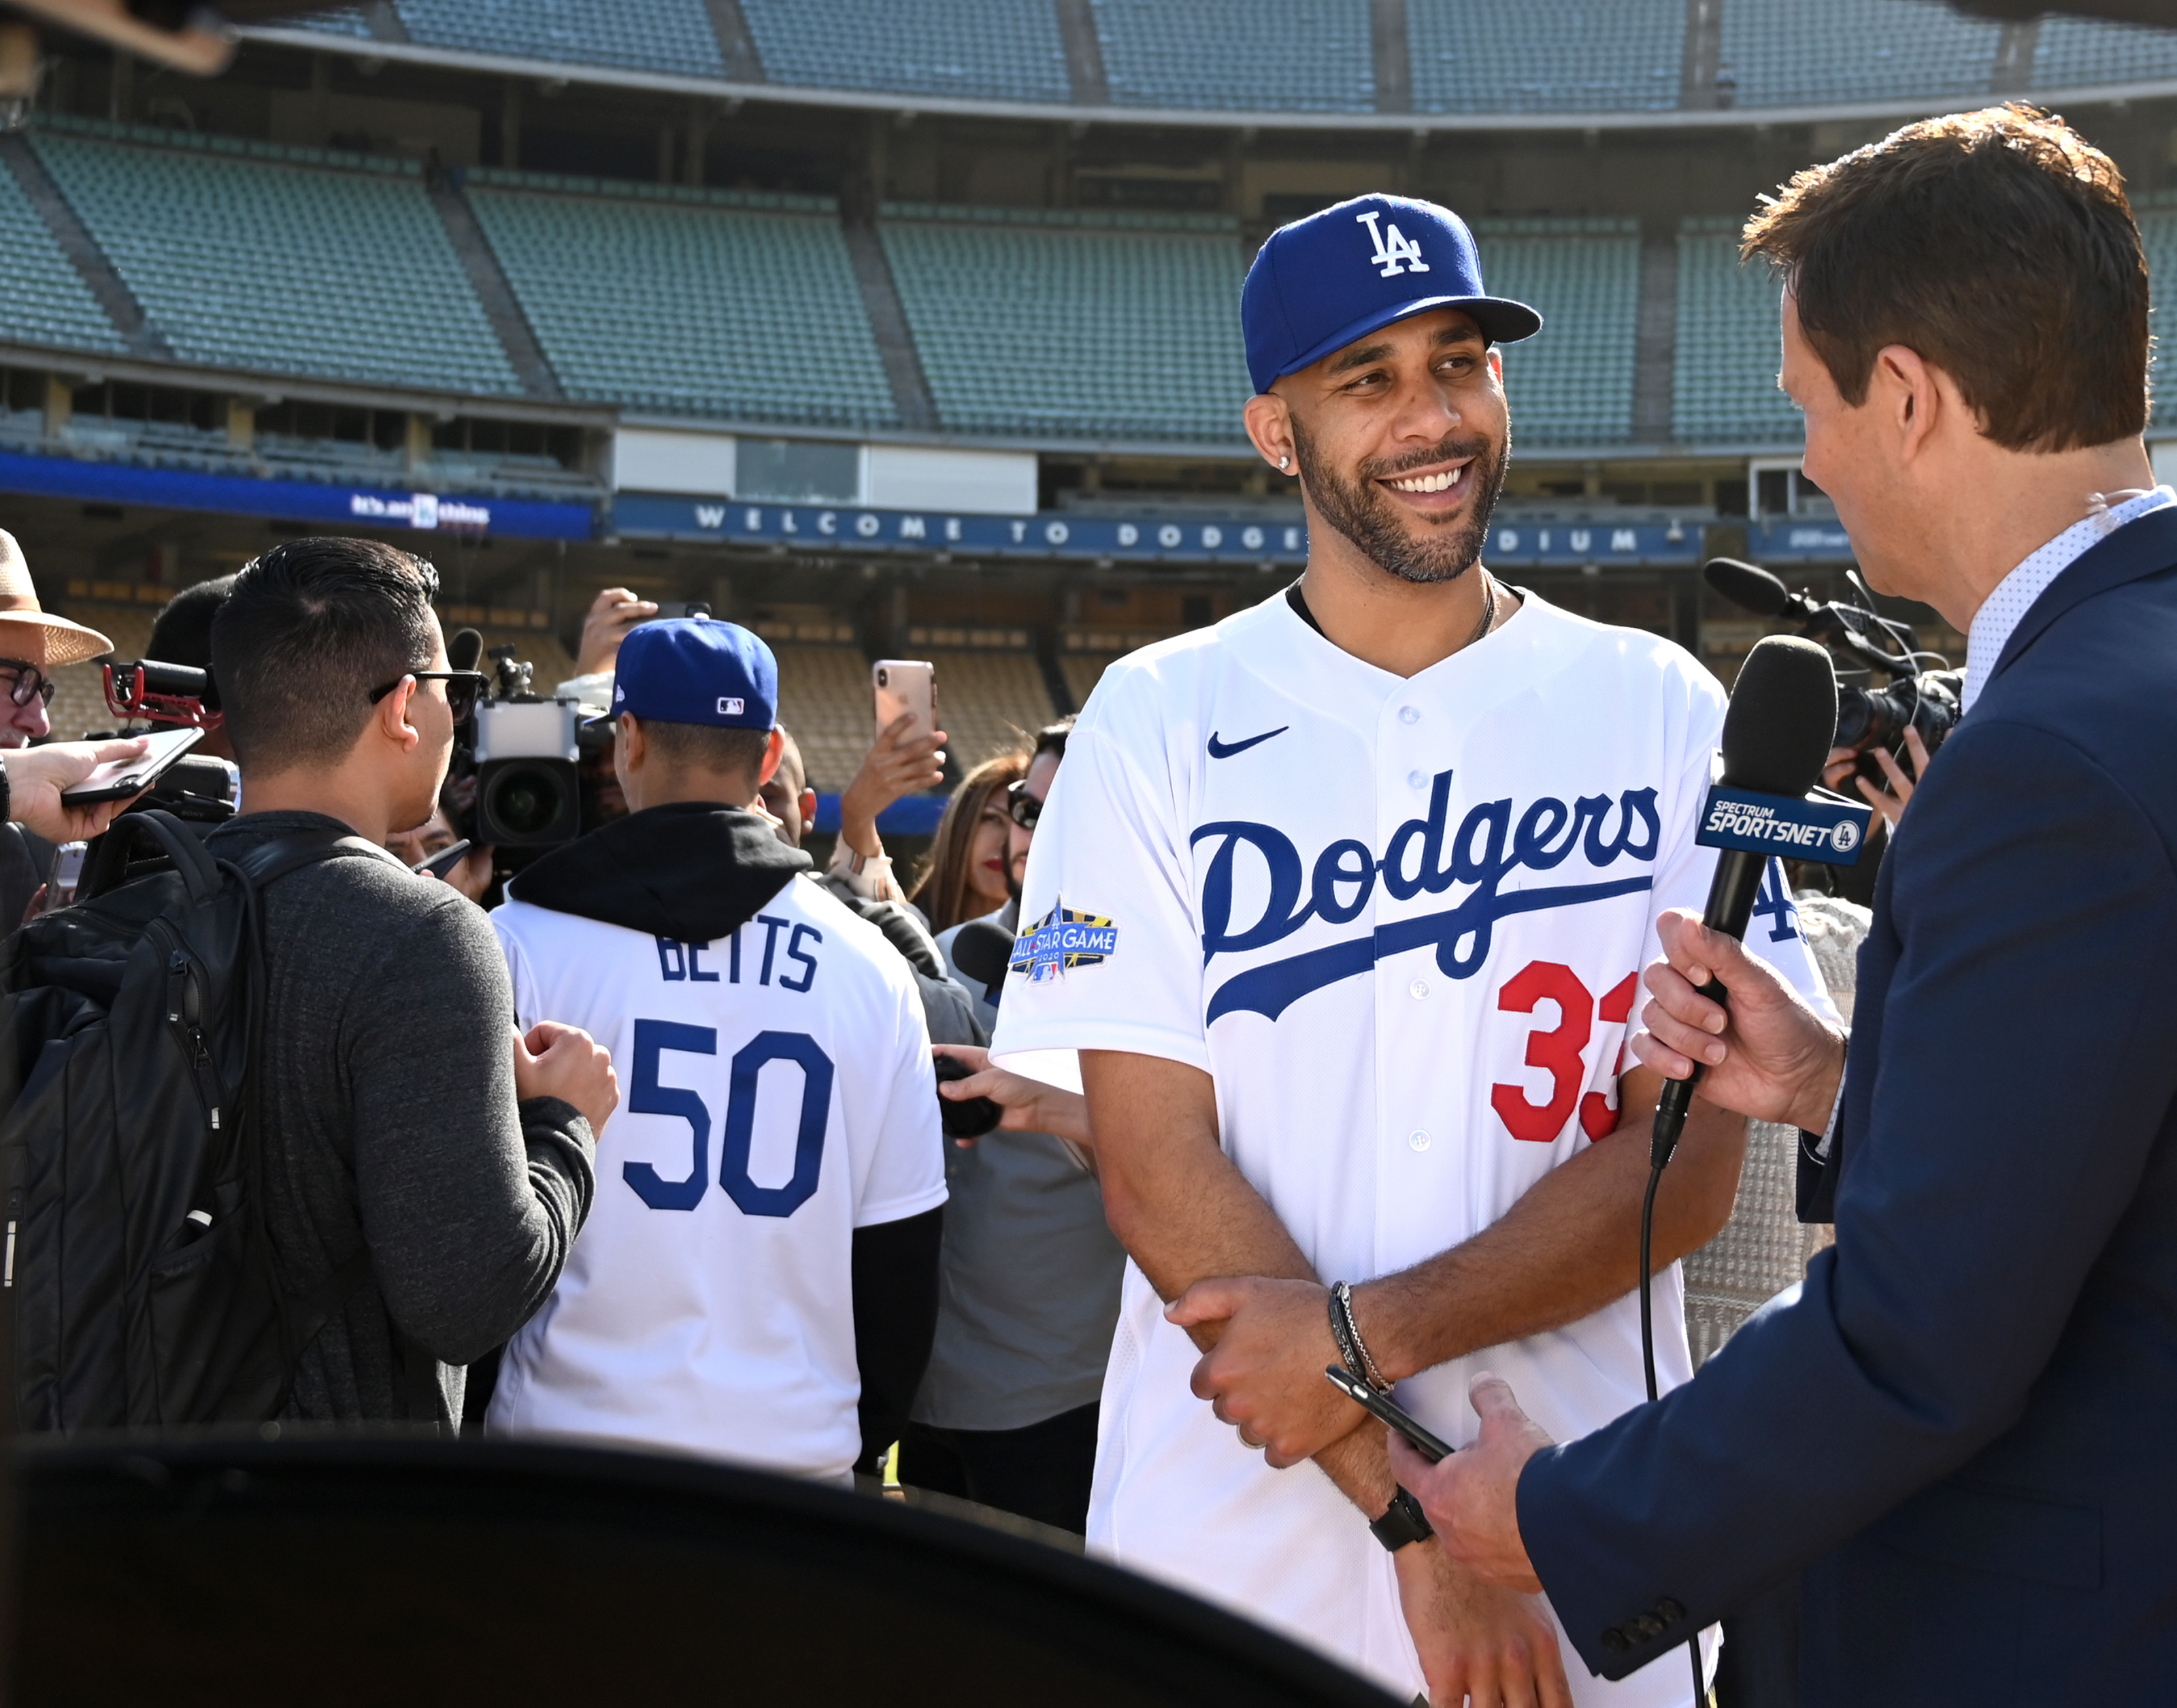 Dodgers David Price Didn T Want Uniform Number To Send Wrong Message